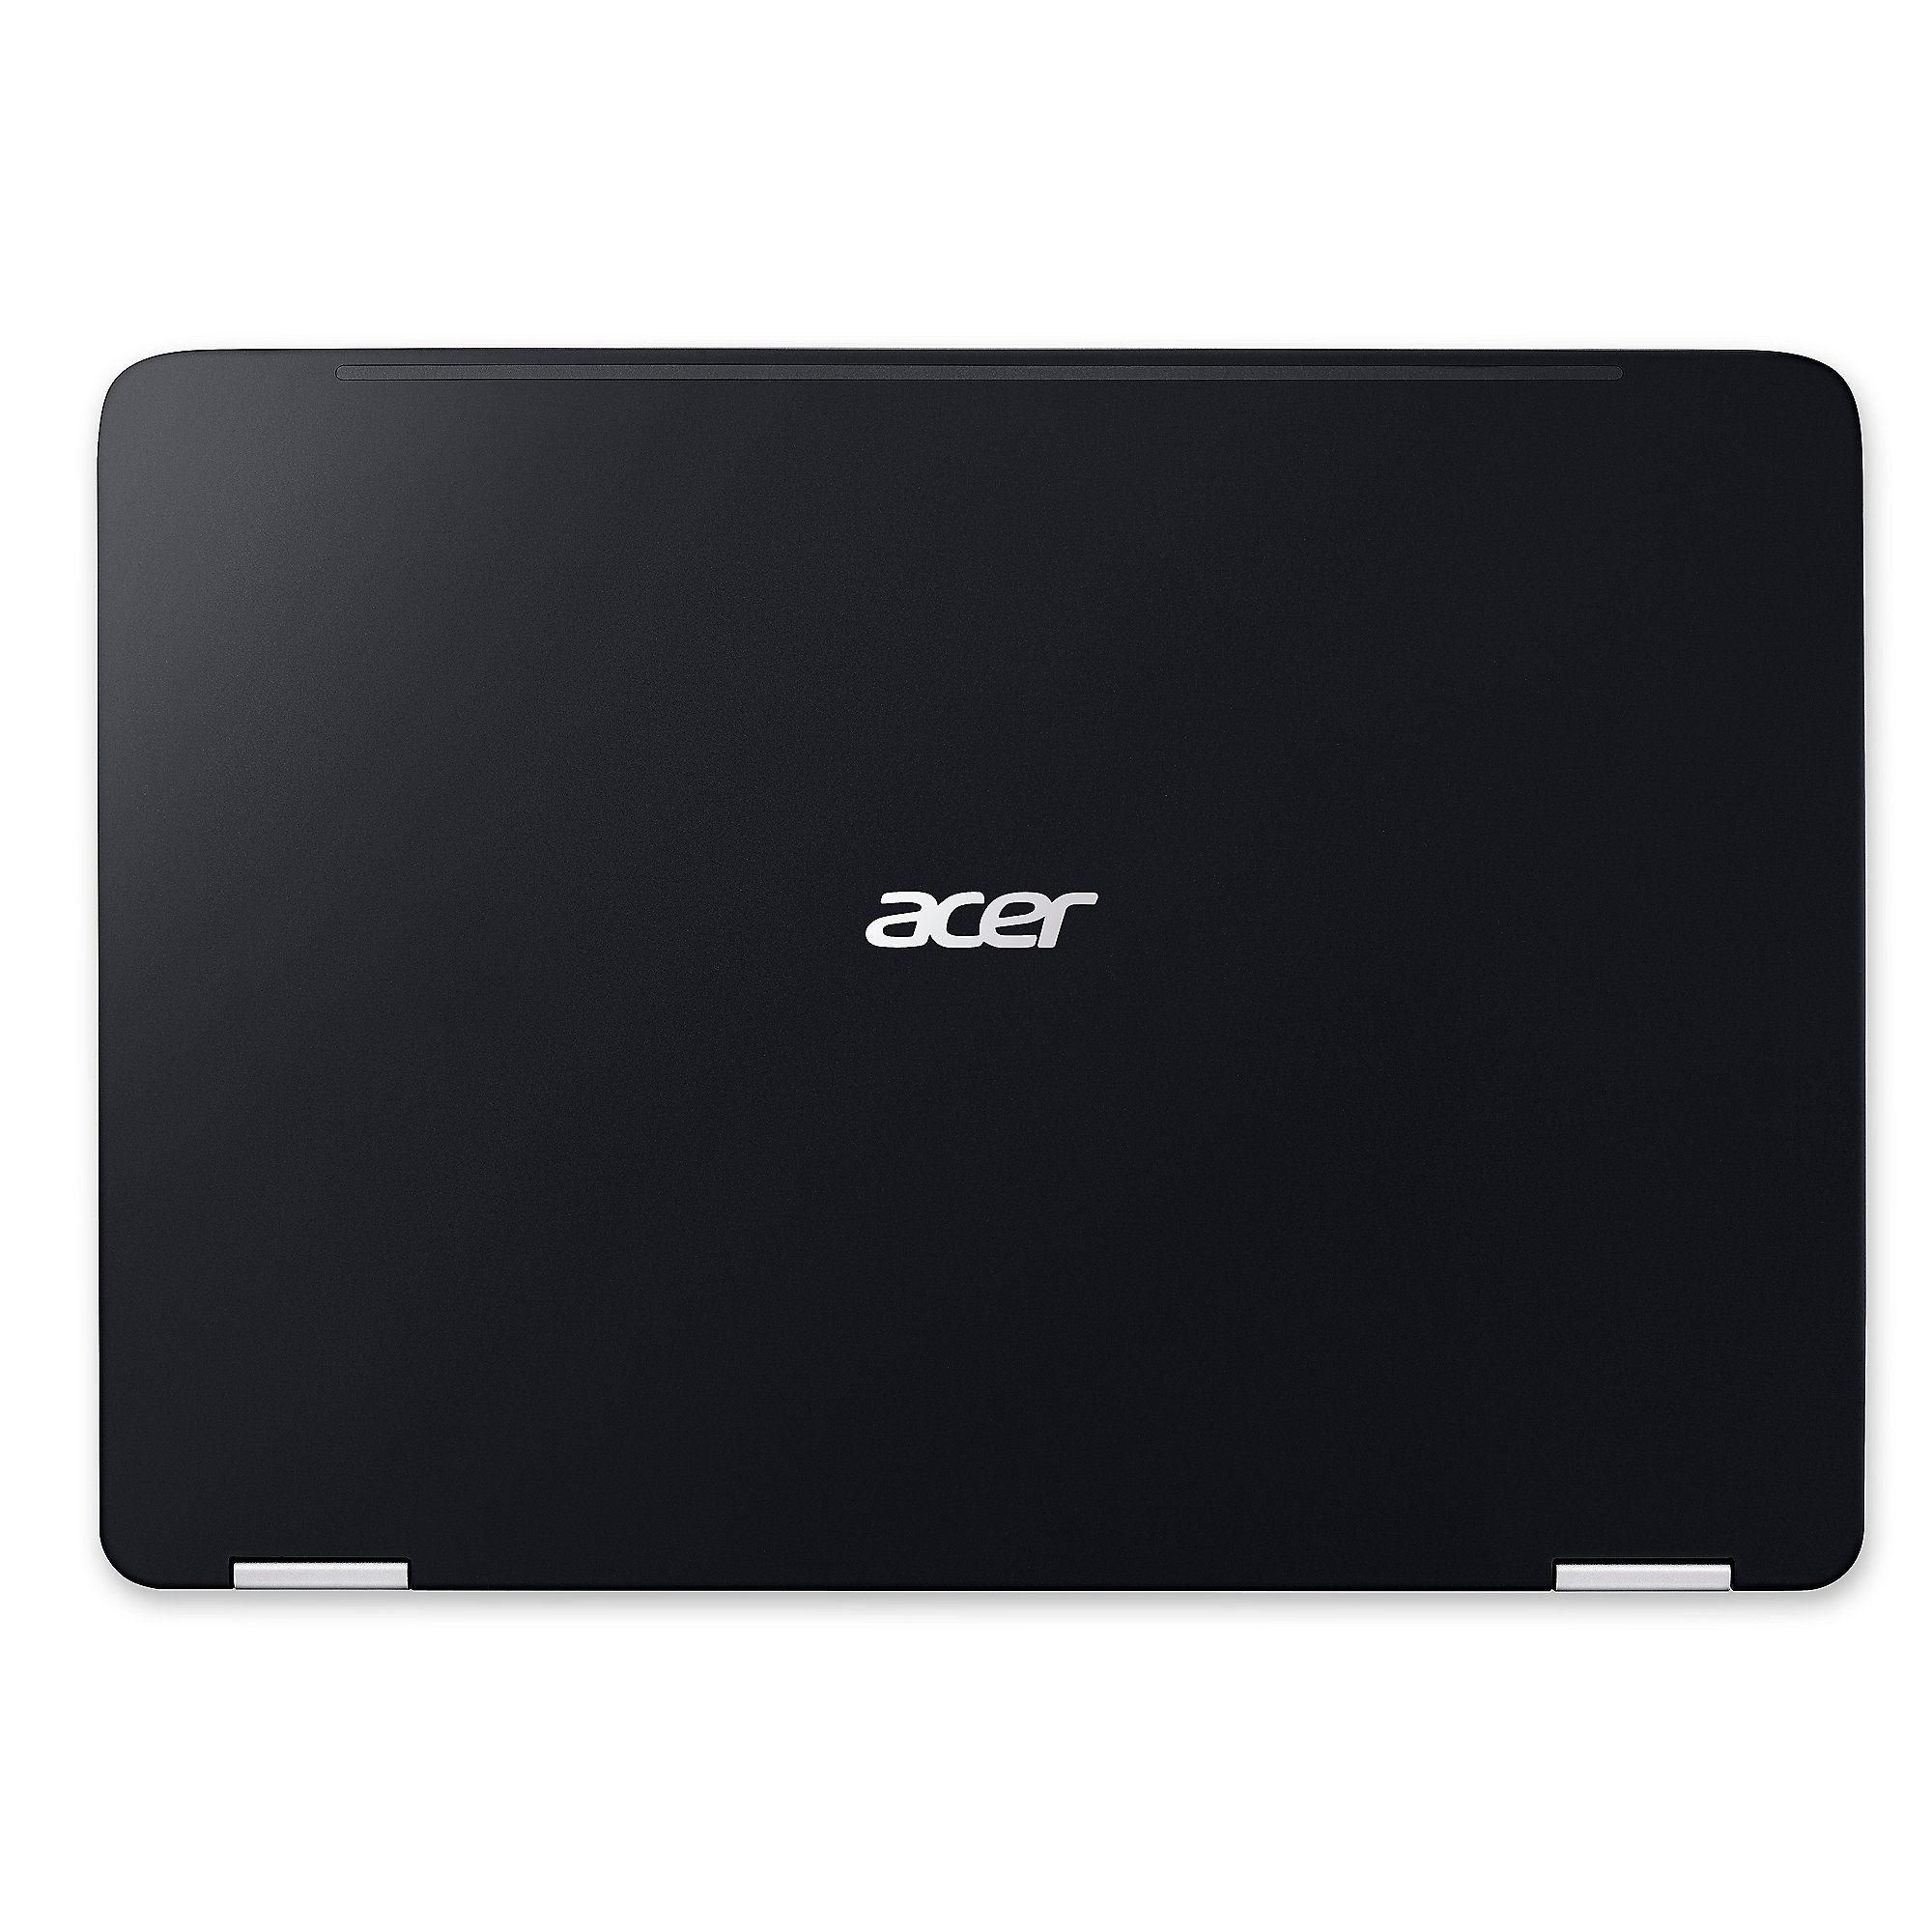 "Acer Spin 7 SP714-51-M1XN i7-7Y75 8GB/256GB SSD 14"" FHD 2in1 Touch W10"